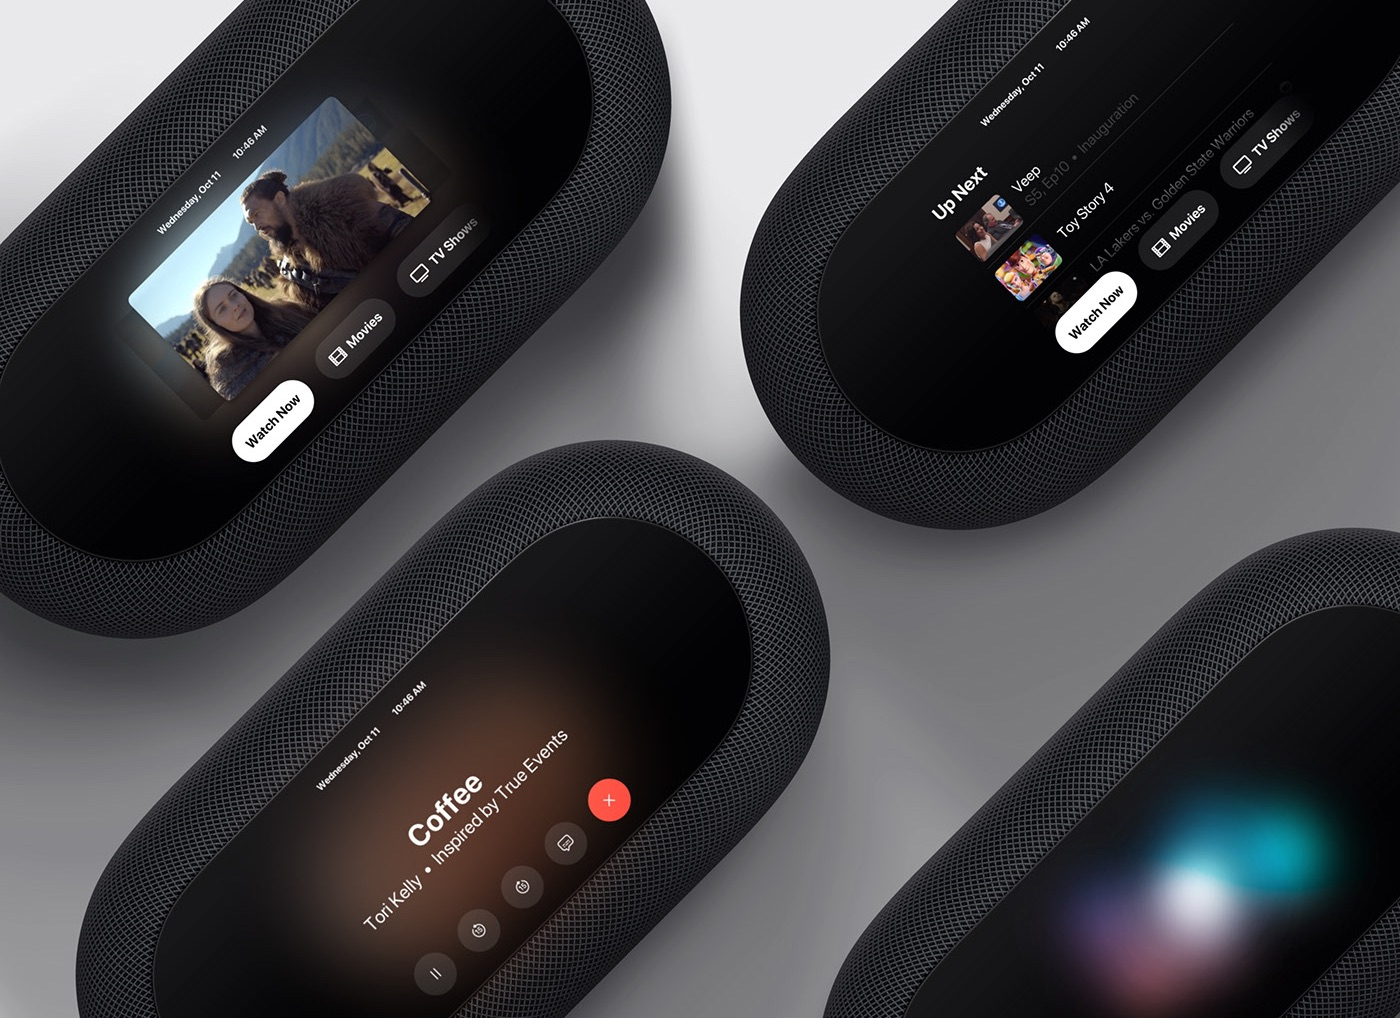 A conceptual rendering depicting an Apple-branded soundbar providing some of the features of the Apple TV and HomePod, with a built-in display